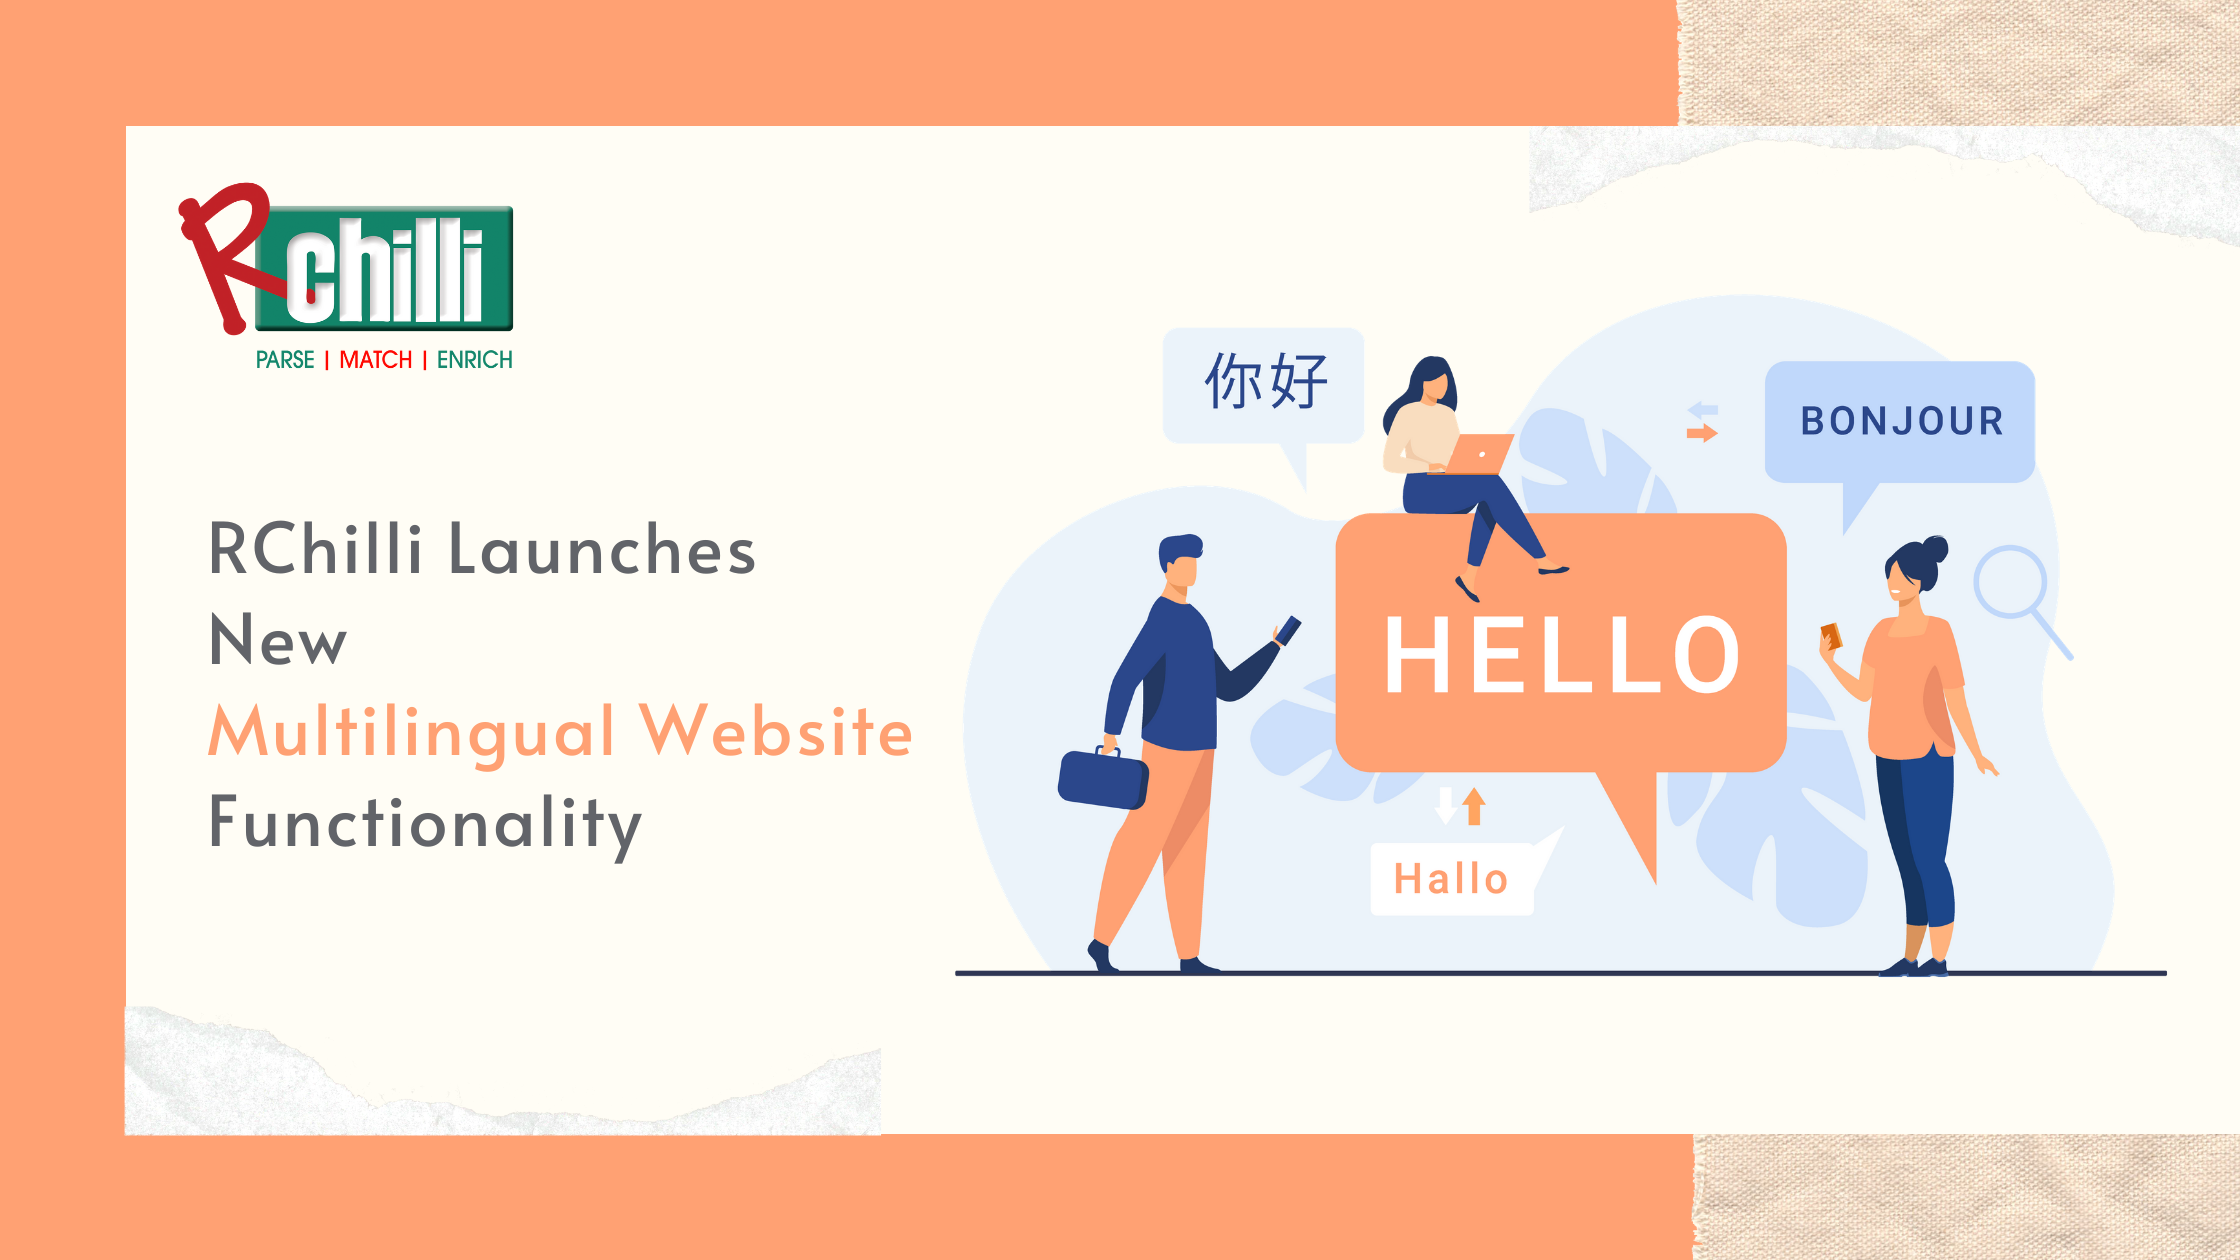 RChilli Launches New Multilingual Website Functionality